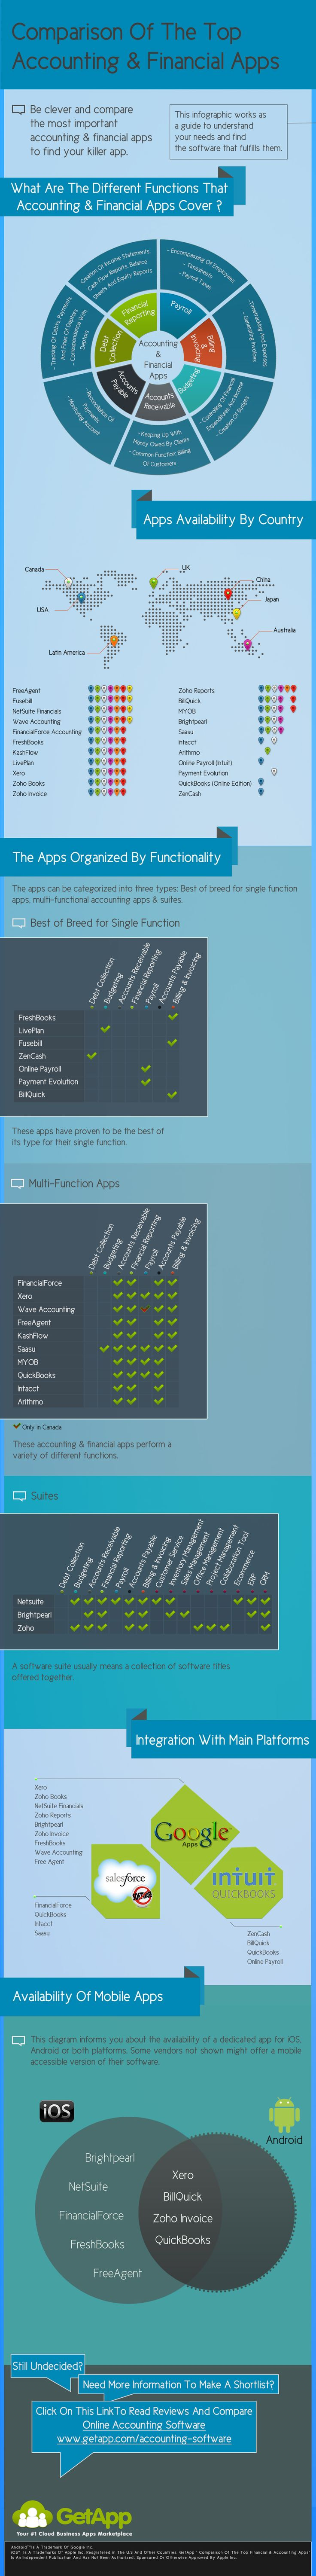 Accounting Infographic - Comparison Of The Top Financial & Accounting Apps